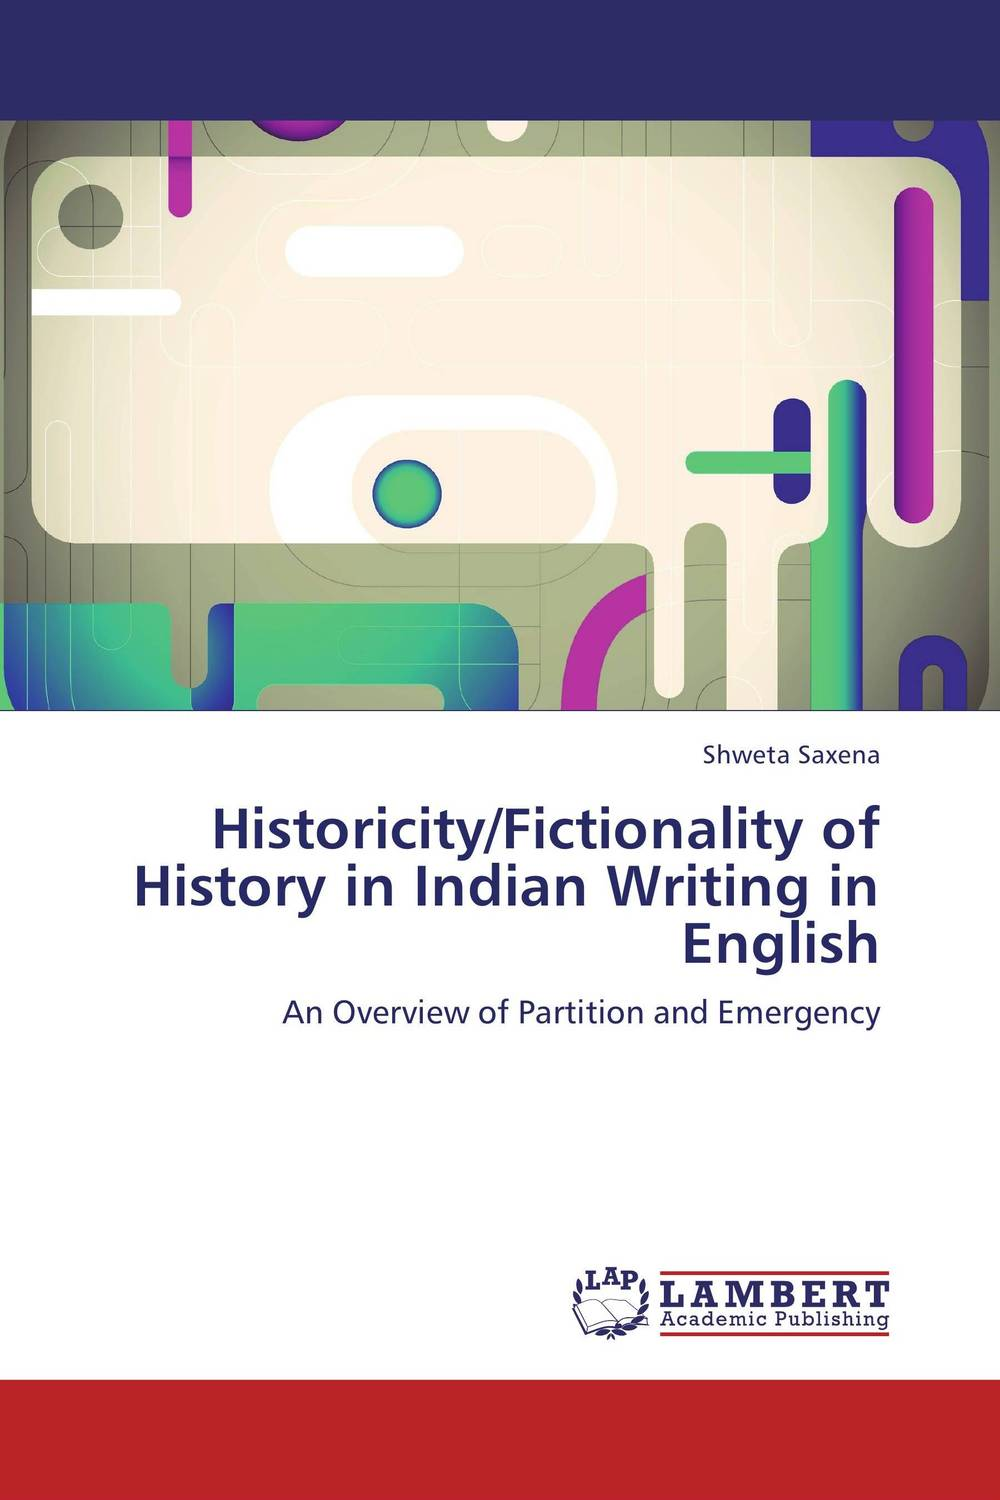 Historicity/Fictionality of History in Indian Writing in English